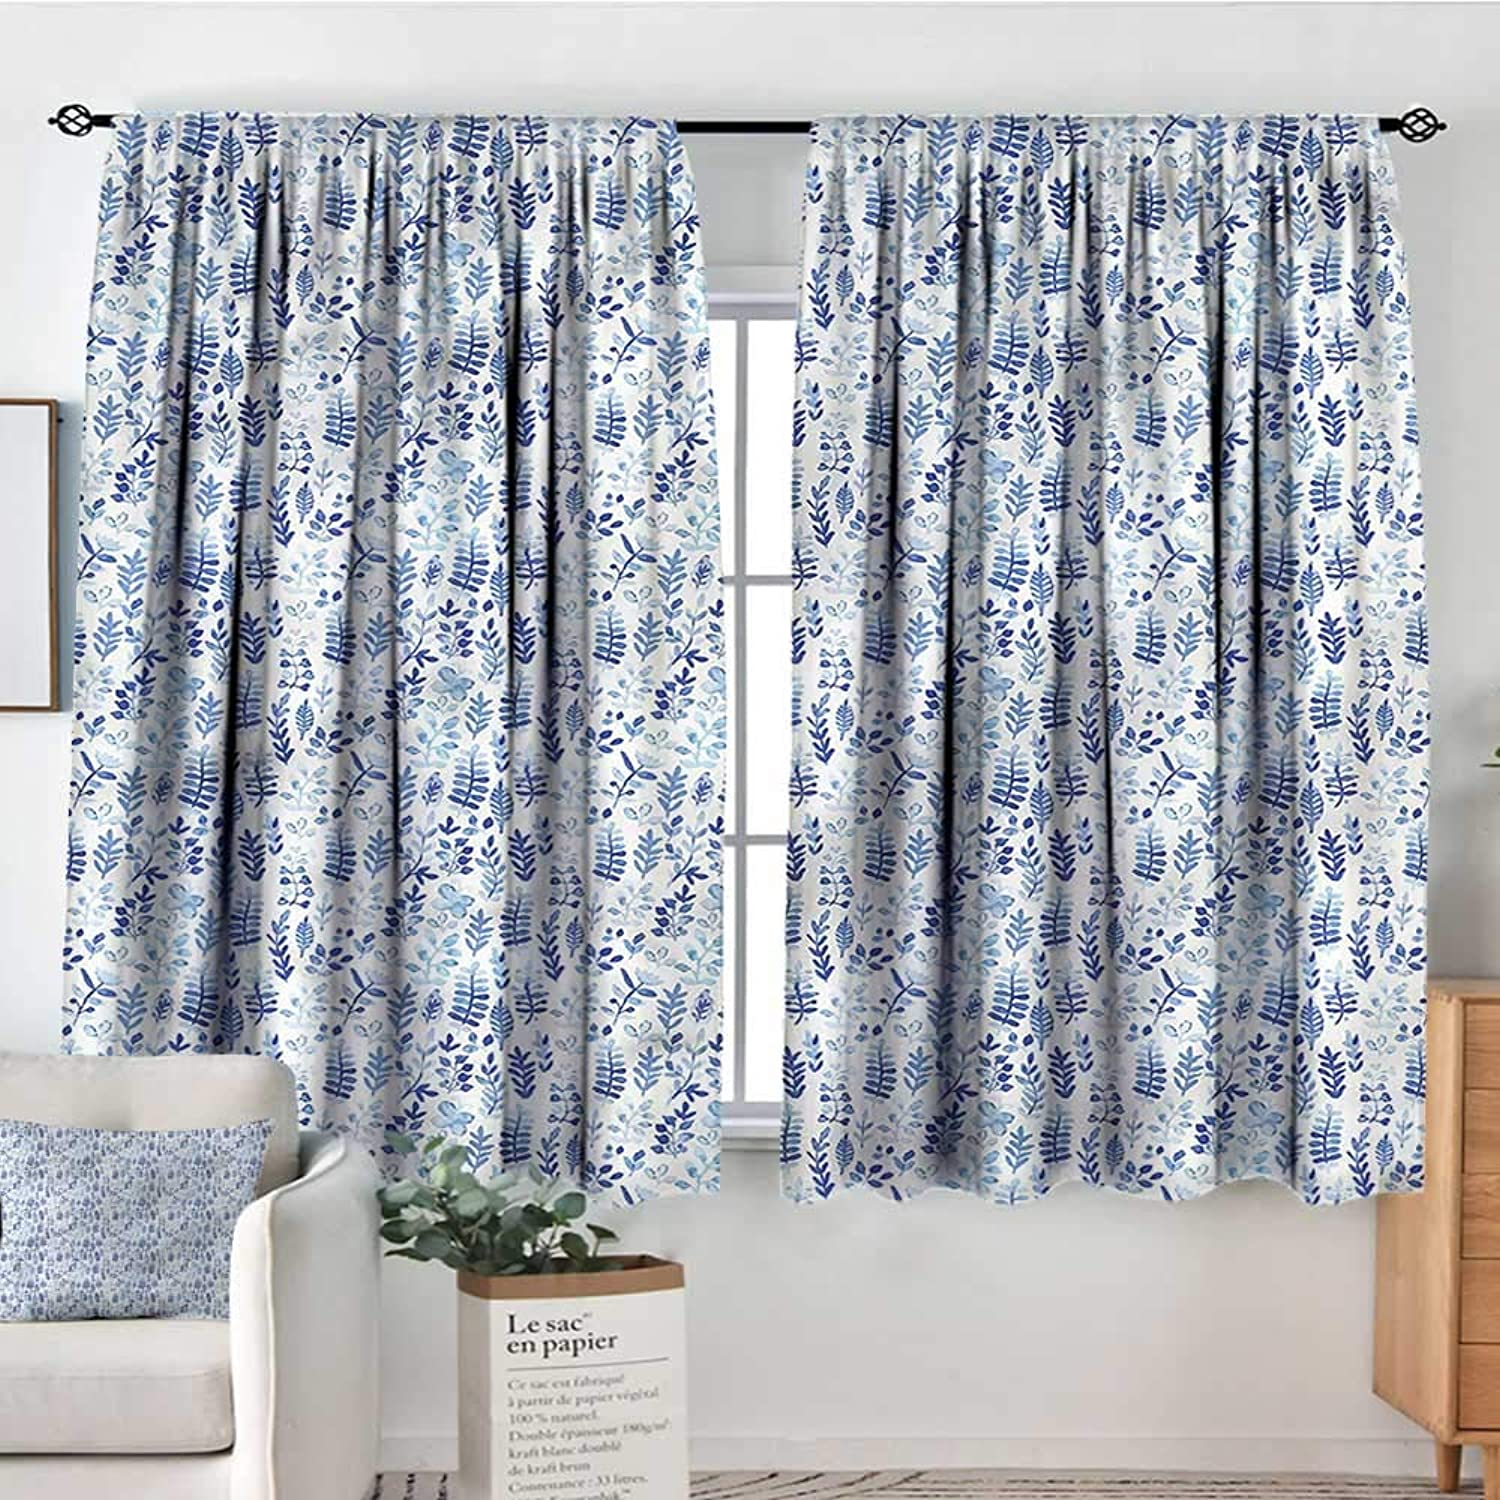 bluee and White,Print Decor Curtains Watercolor Herbs 42 X63  Drapes for Girs Iving Room